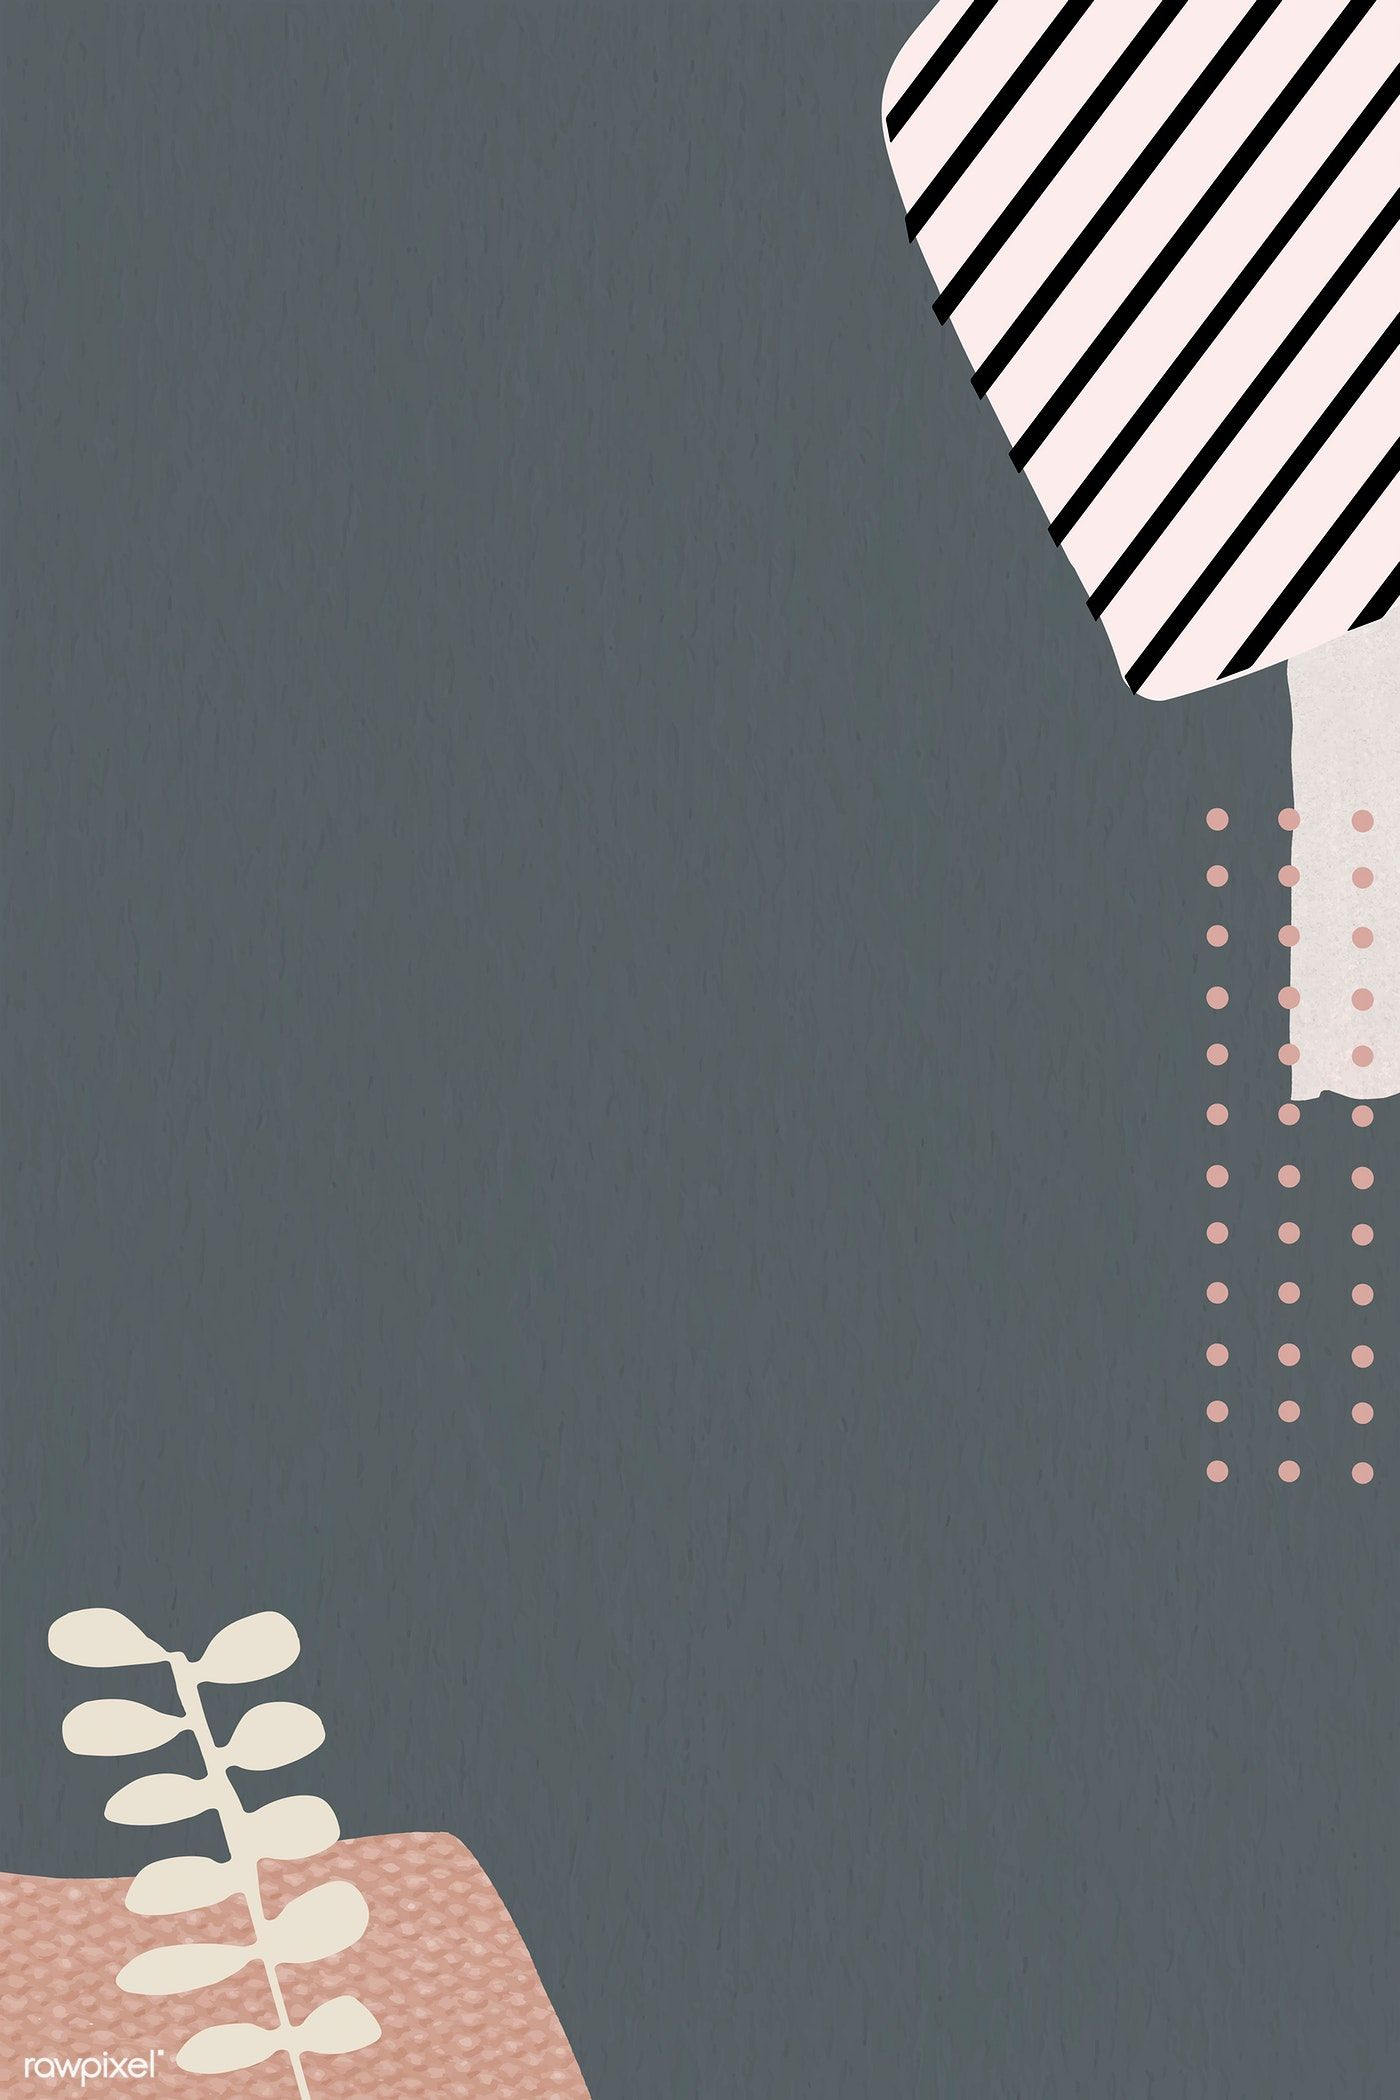 Download premium vector of Leaf pattern on gray background vector 1214264